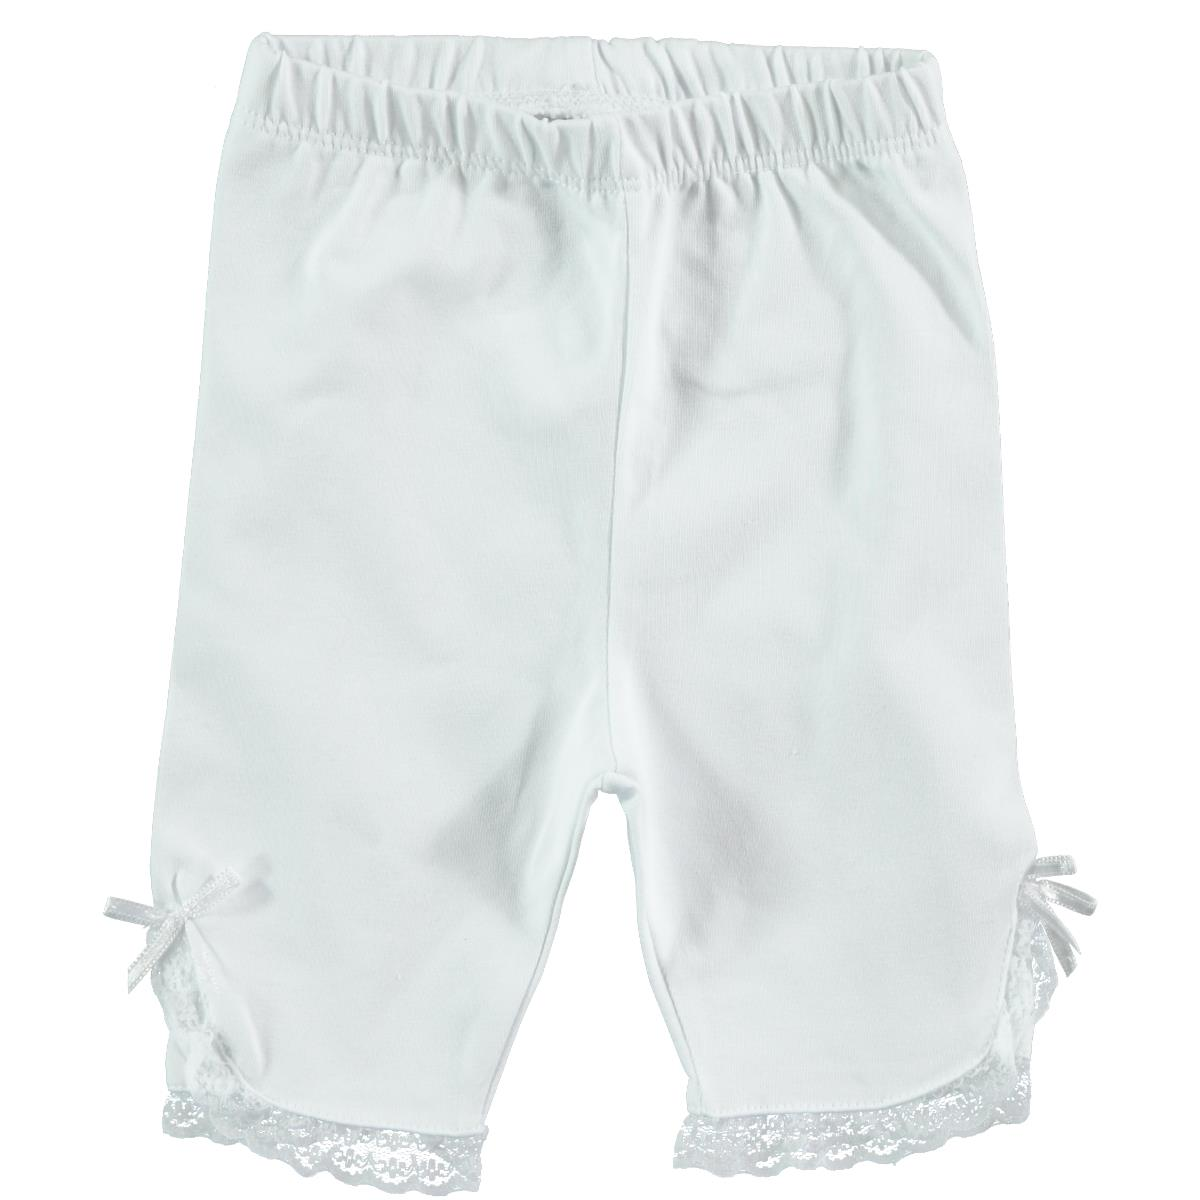 Kujju 6-18 Months Baby Girl White Lace Short Tights